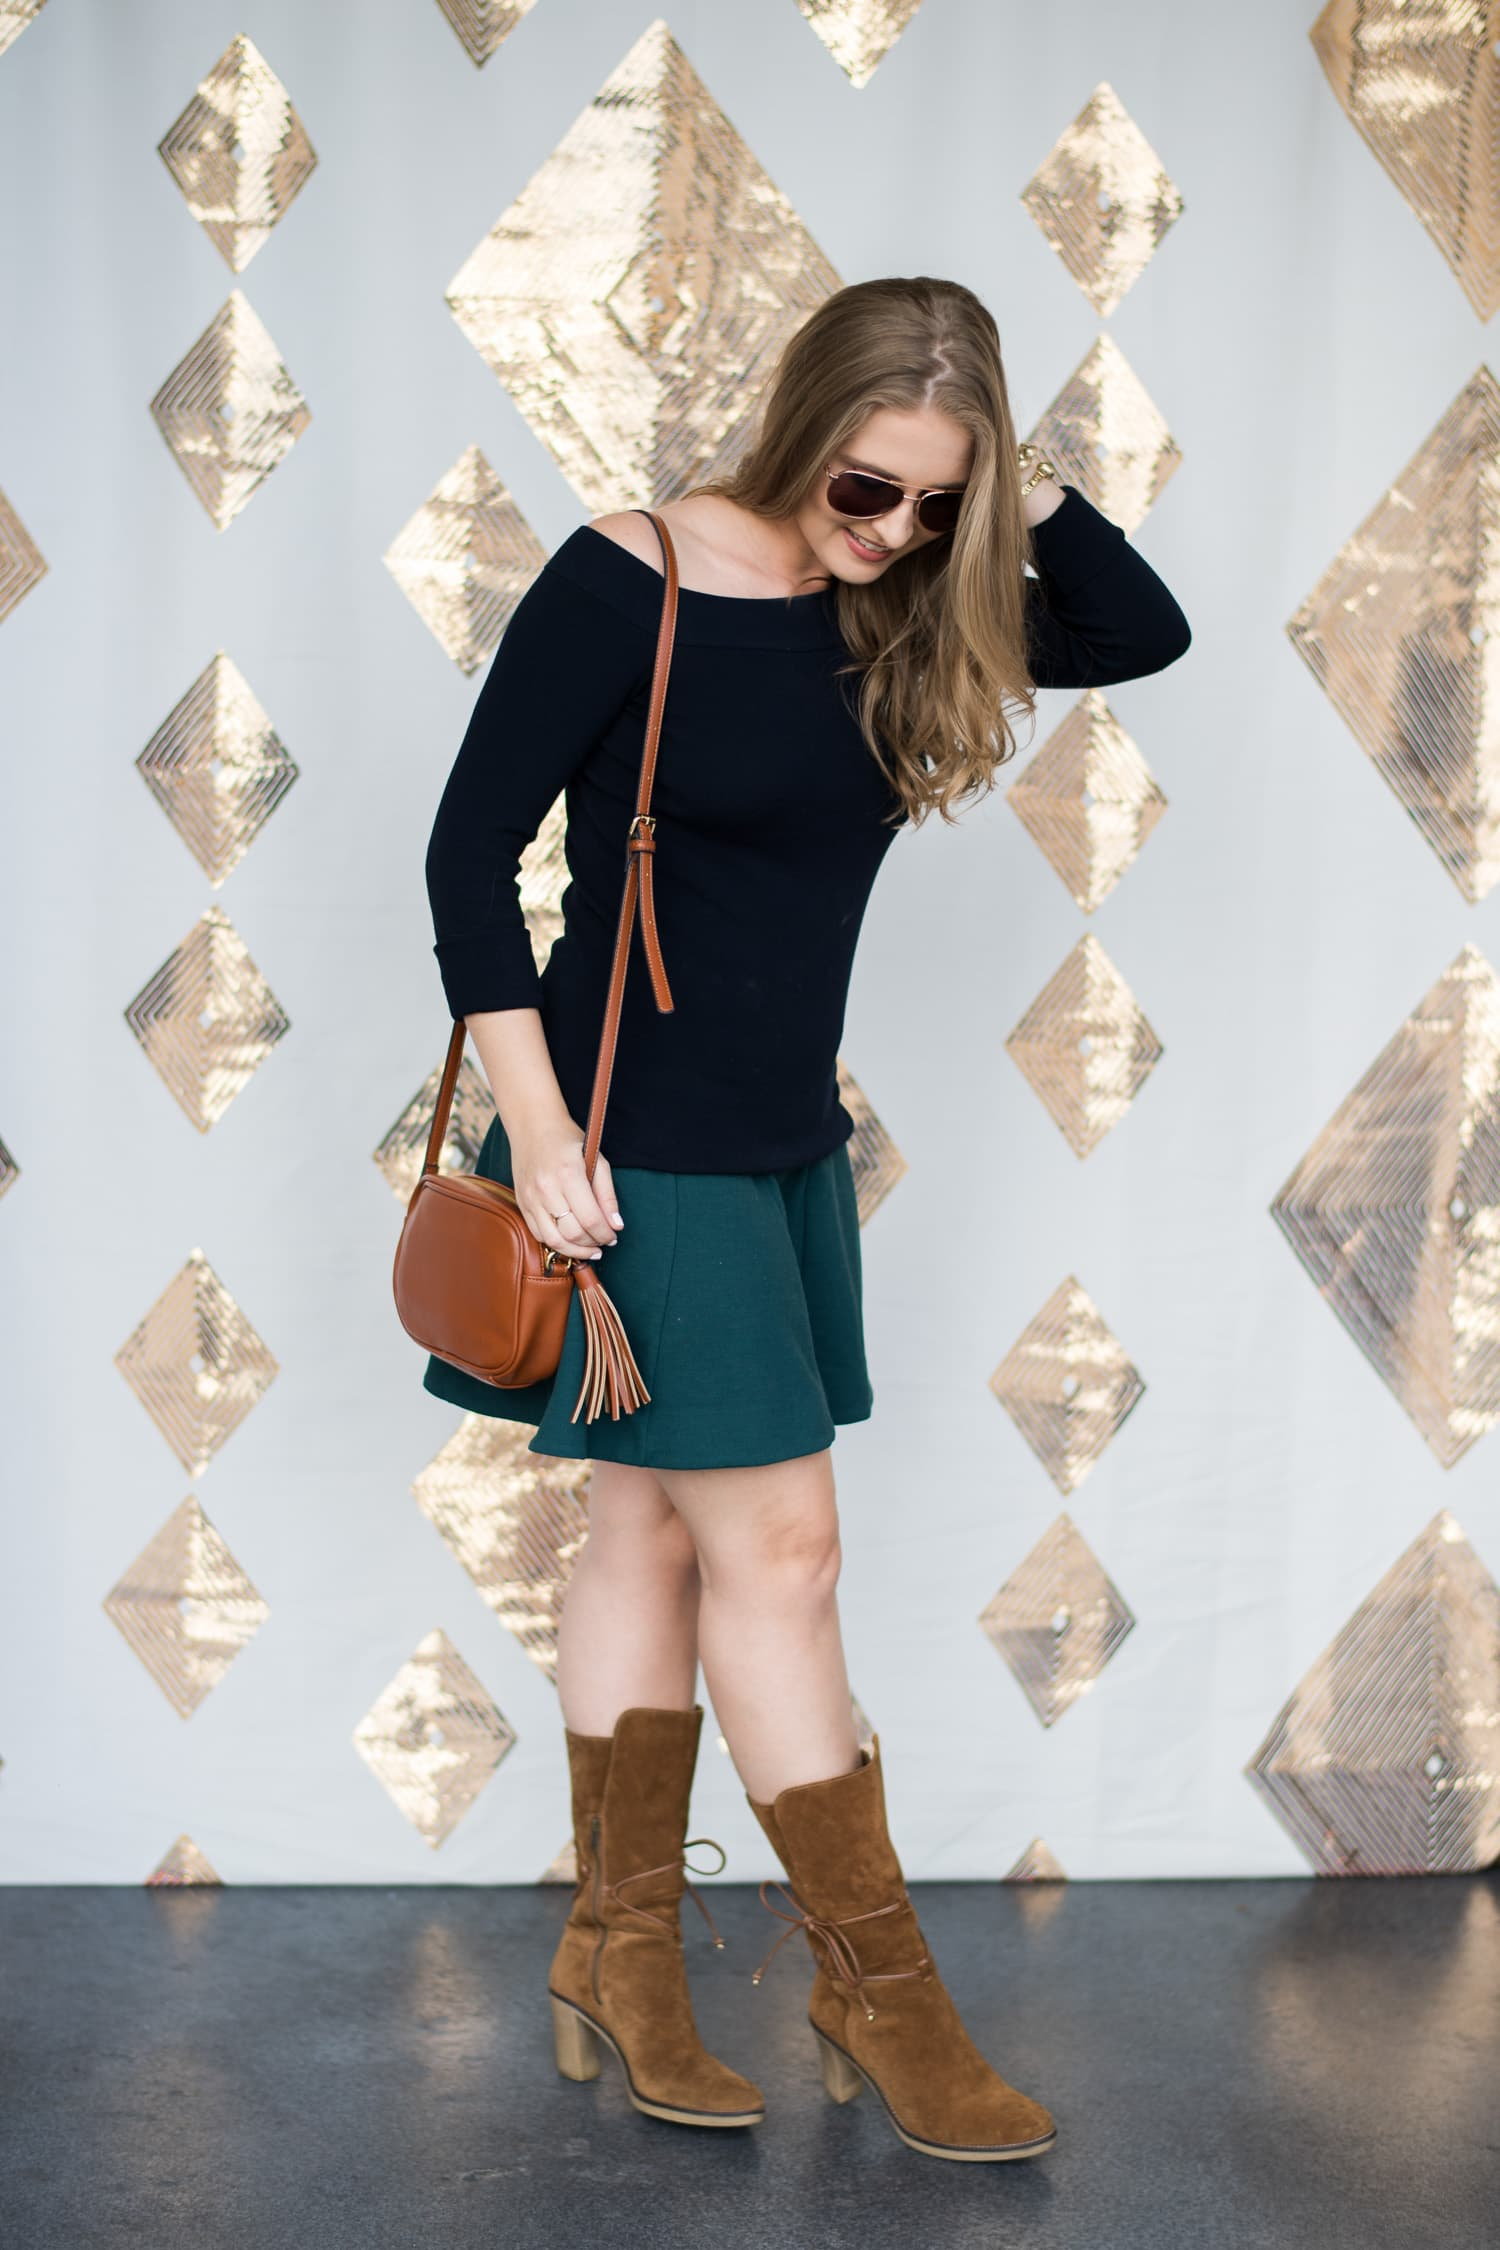 casual-fall-outfit-brown-suede-boots-foster-grant-opening-orlando-3223